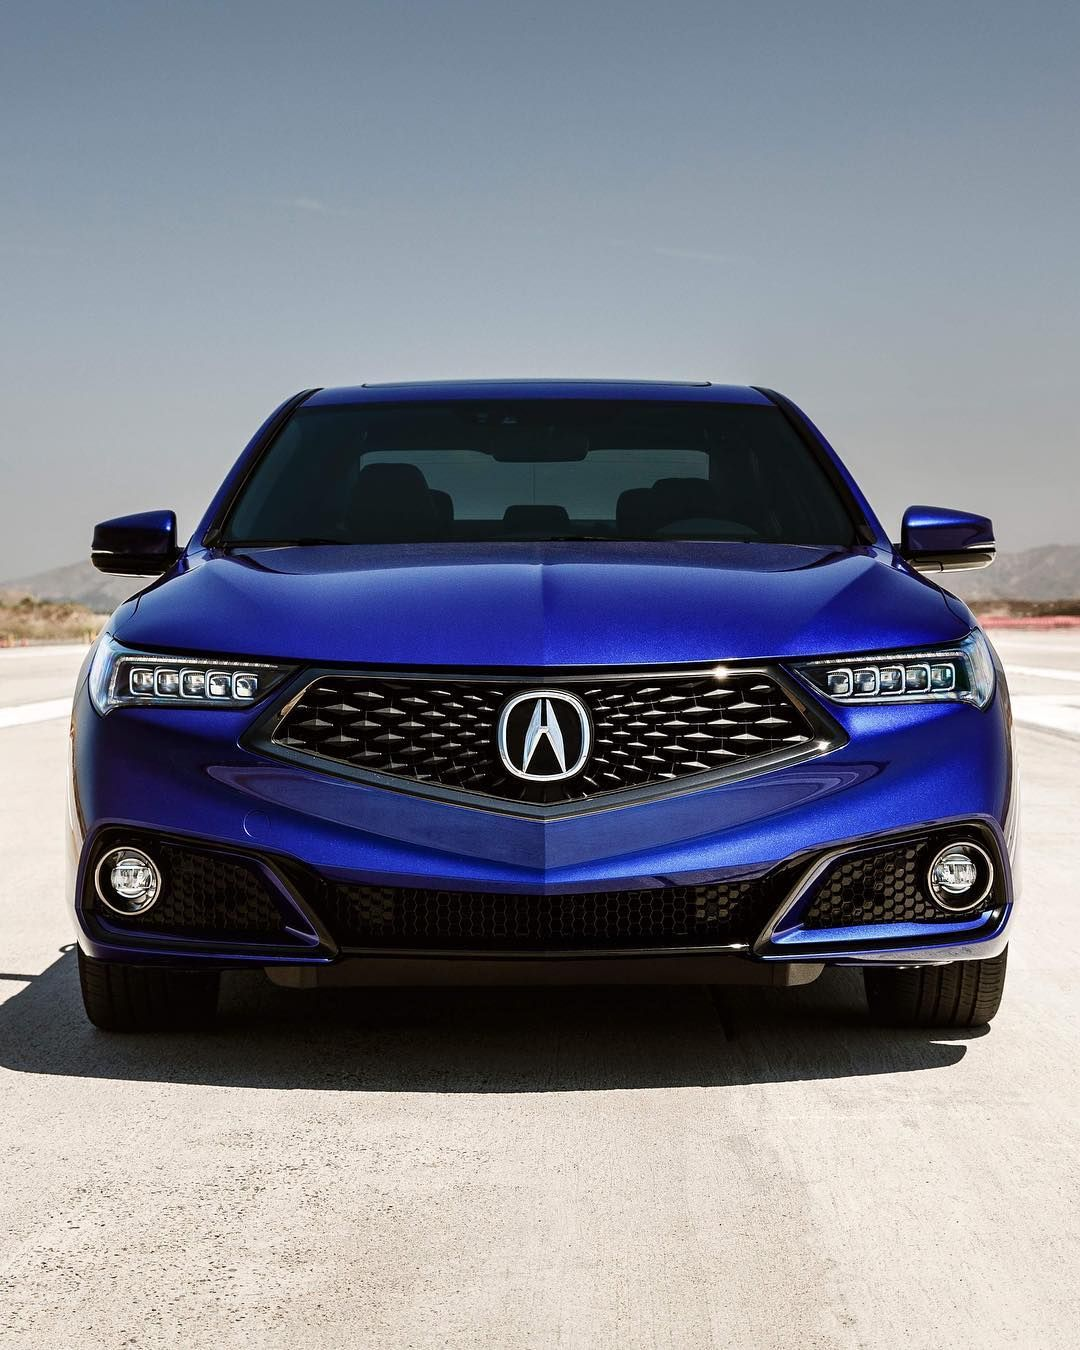 Acura. Behind The Badge On The #acura #TLX A-Spec Is A